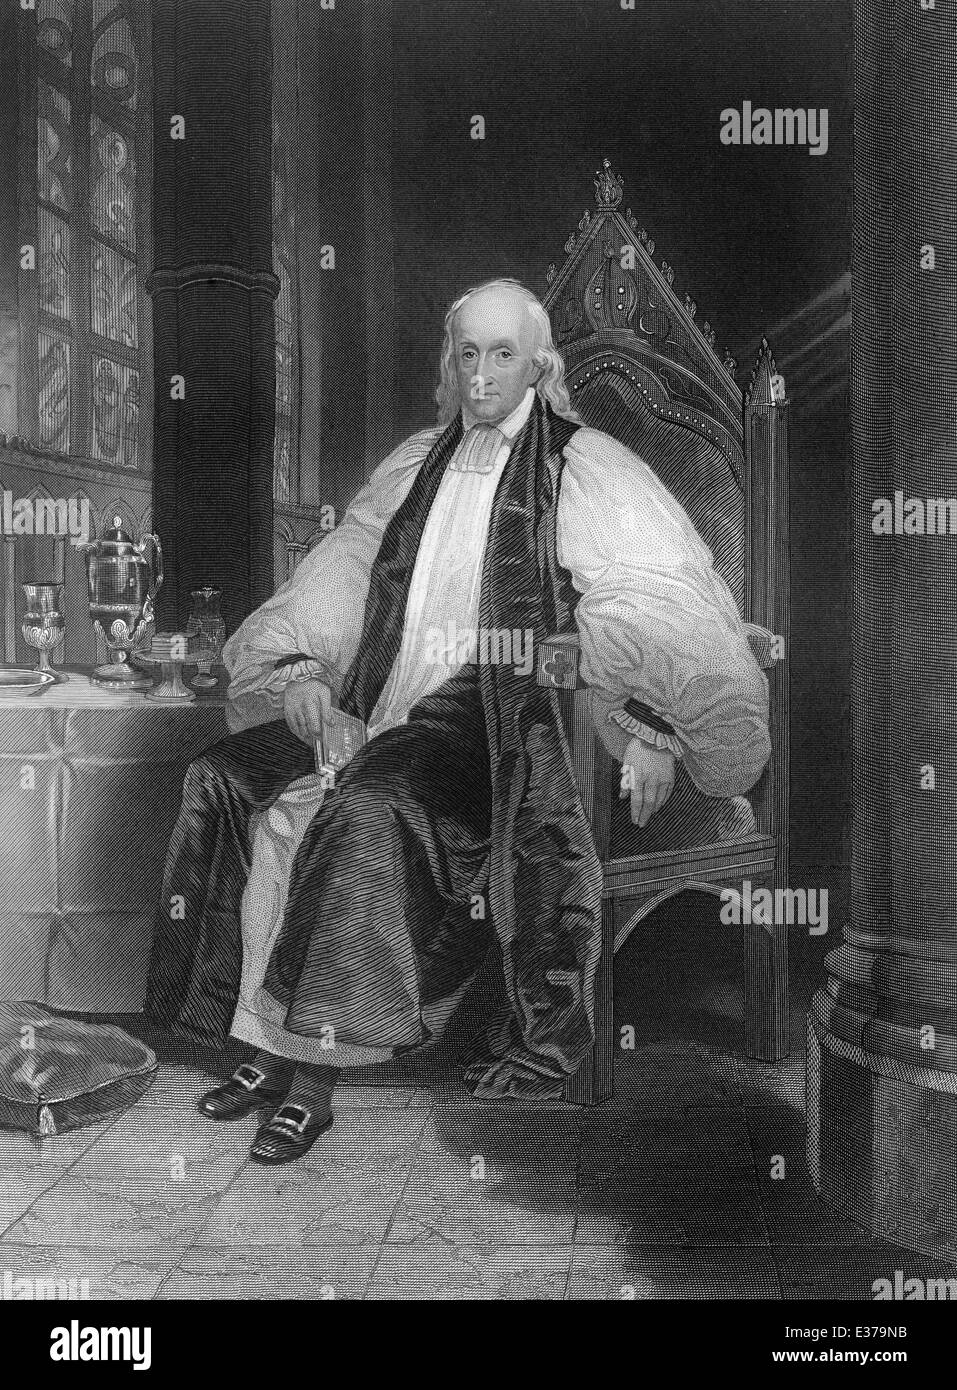 William White, 1748 - 1836, an U.S.-American Clergyman, Bishop of Philadelphia, - Stock Image